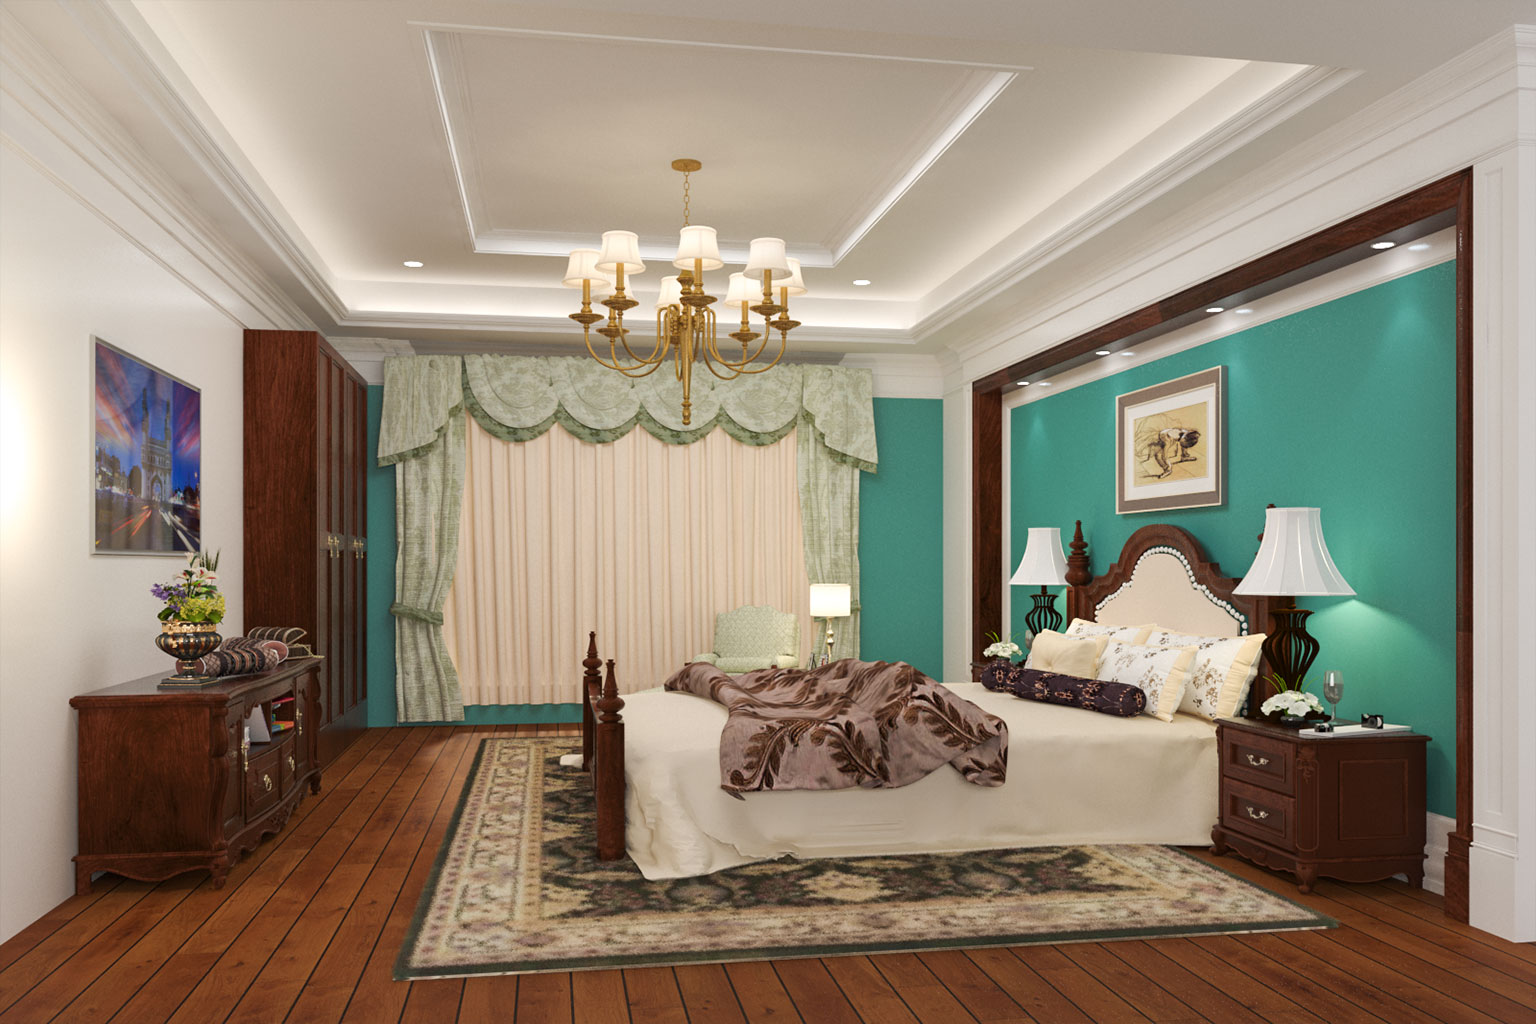 Customized Interior Designs Made for You